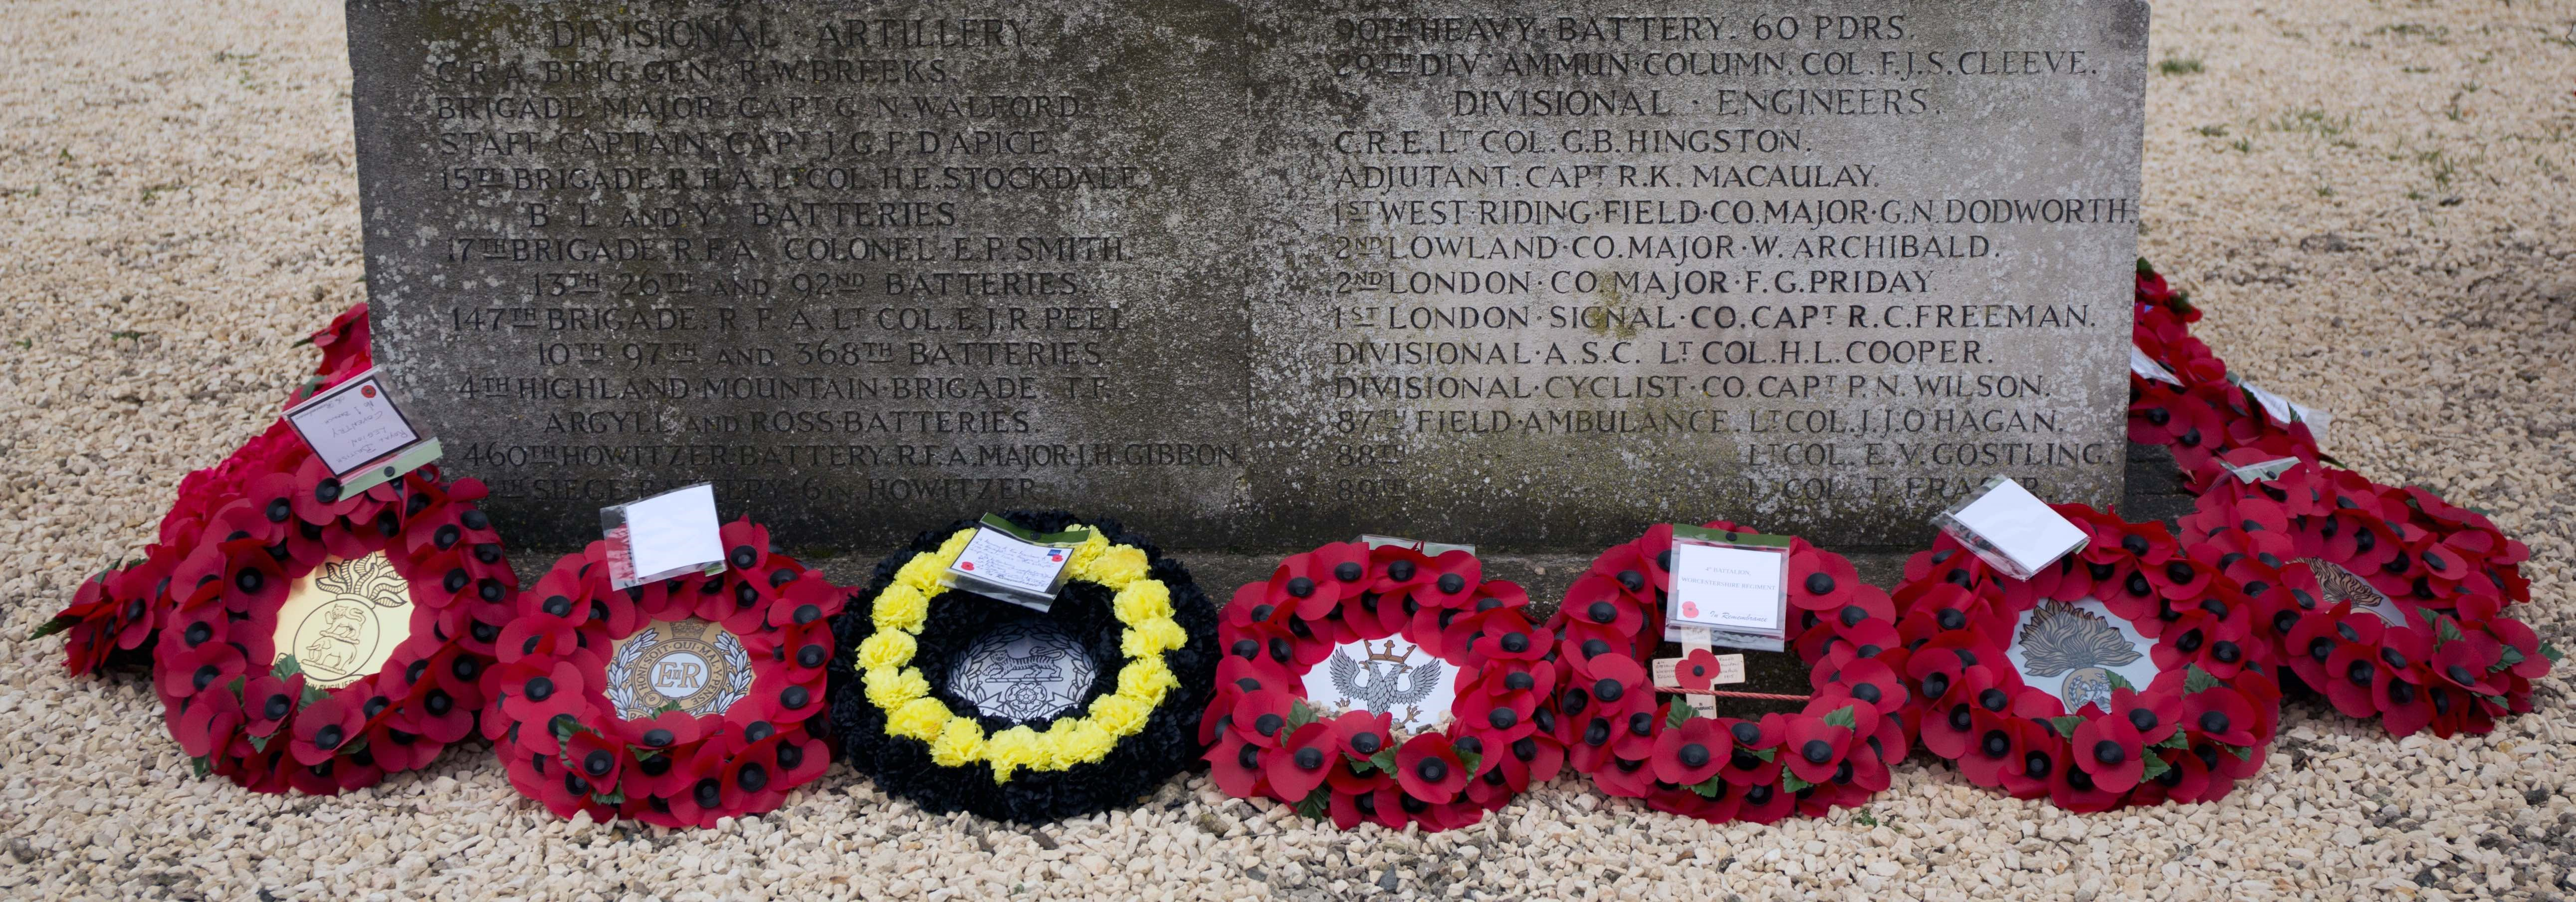 A selection of the many wreaths laid around the Monument